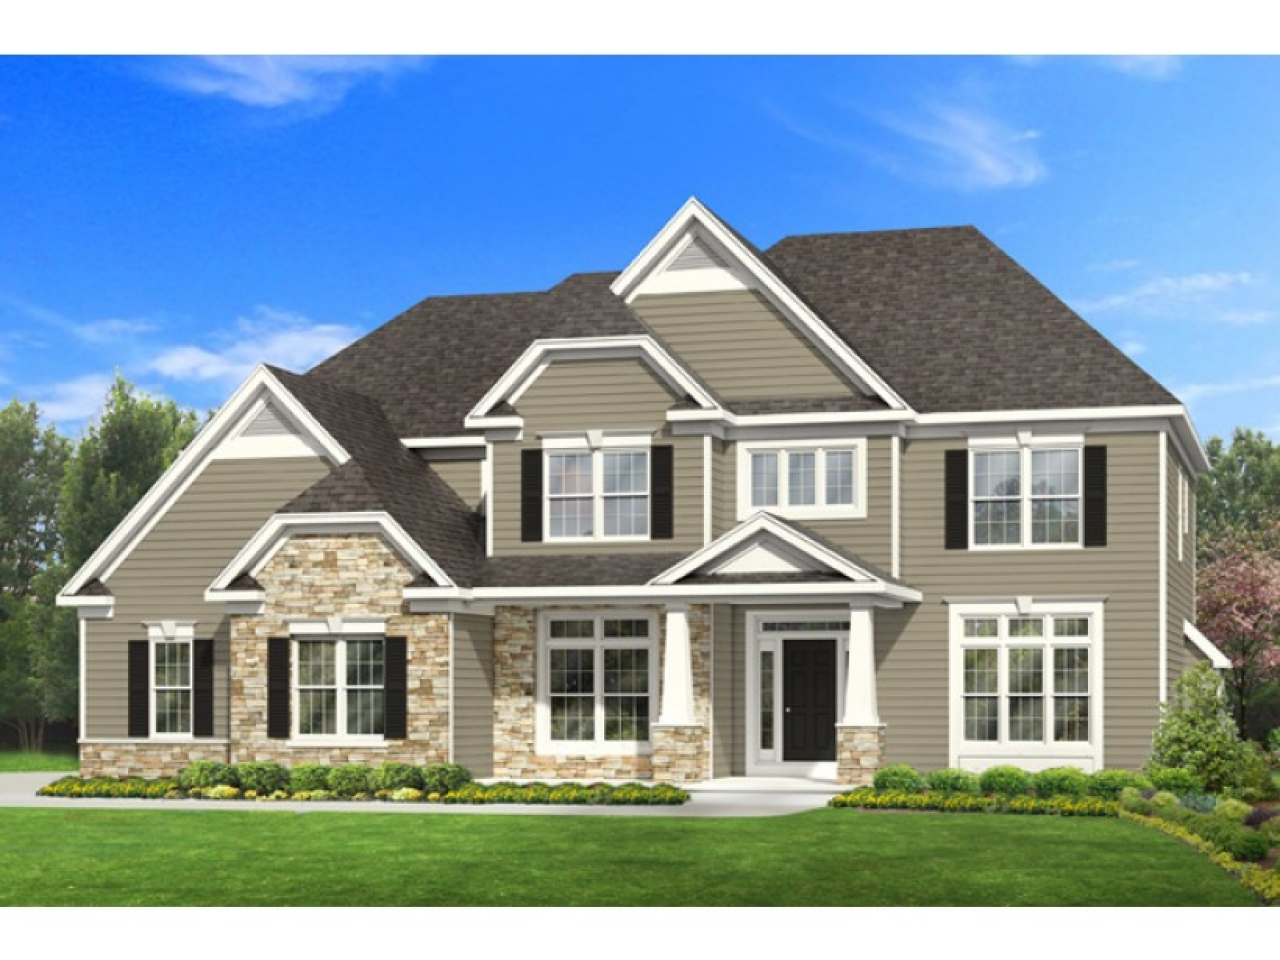 Long lots blueprints 3 bedroom 1 story 2 story 4 bedroom for 3 bedroom 1 story house plans